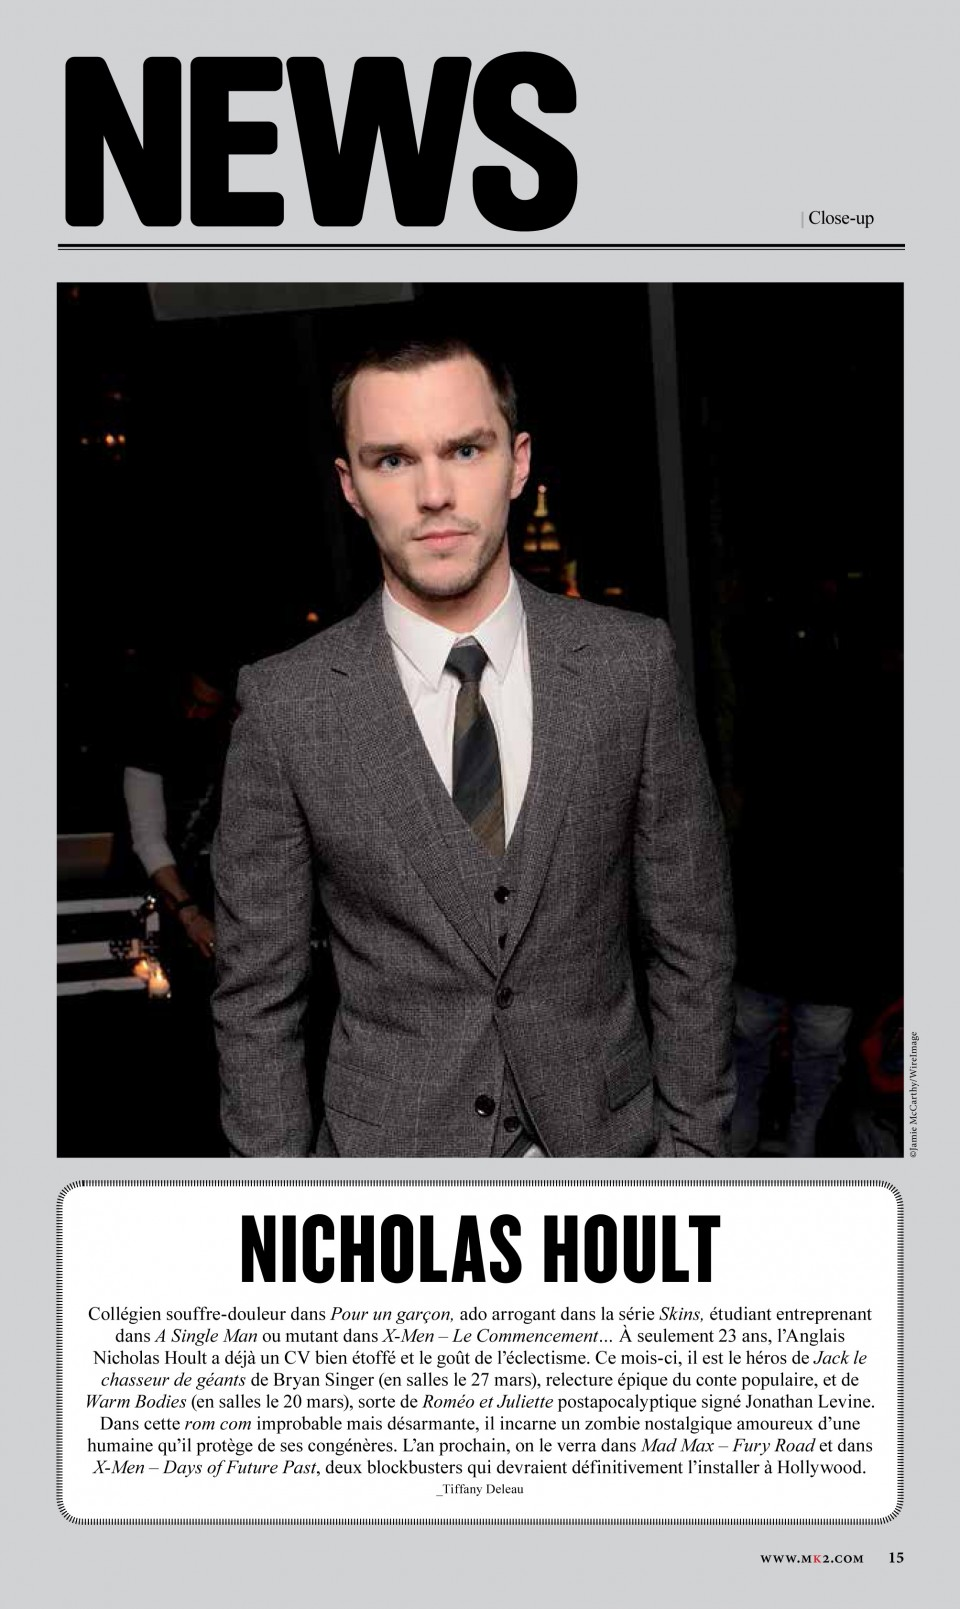 News---Close-up---Nicholas-Hoult